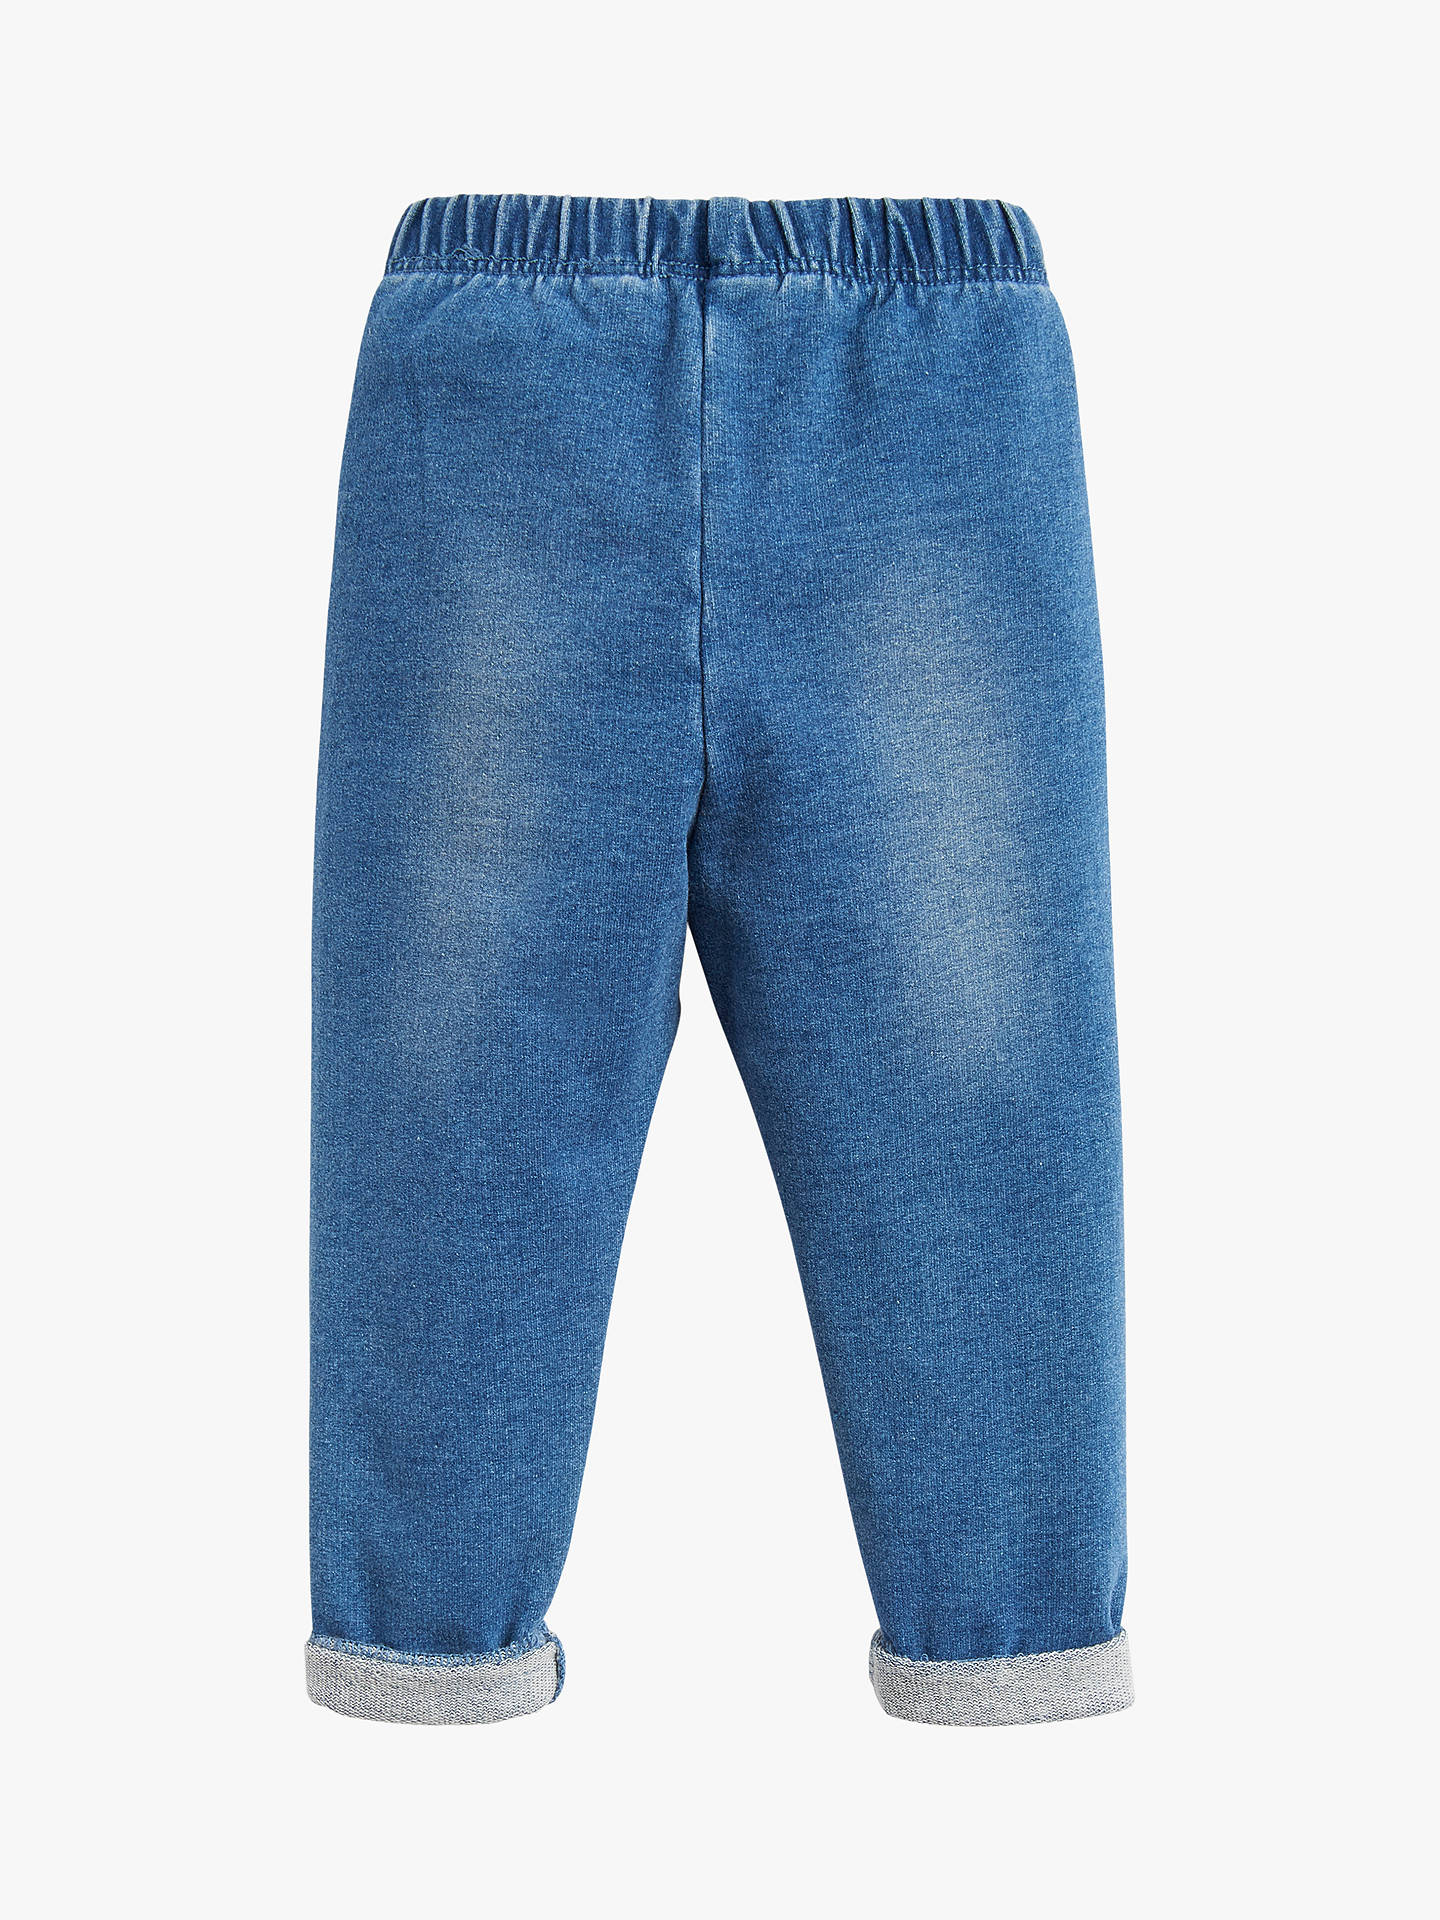 BuyBaby Joule Young Minnie Denim Leggings, Blue, 0-3 months Online at johnlewis.com